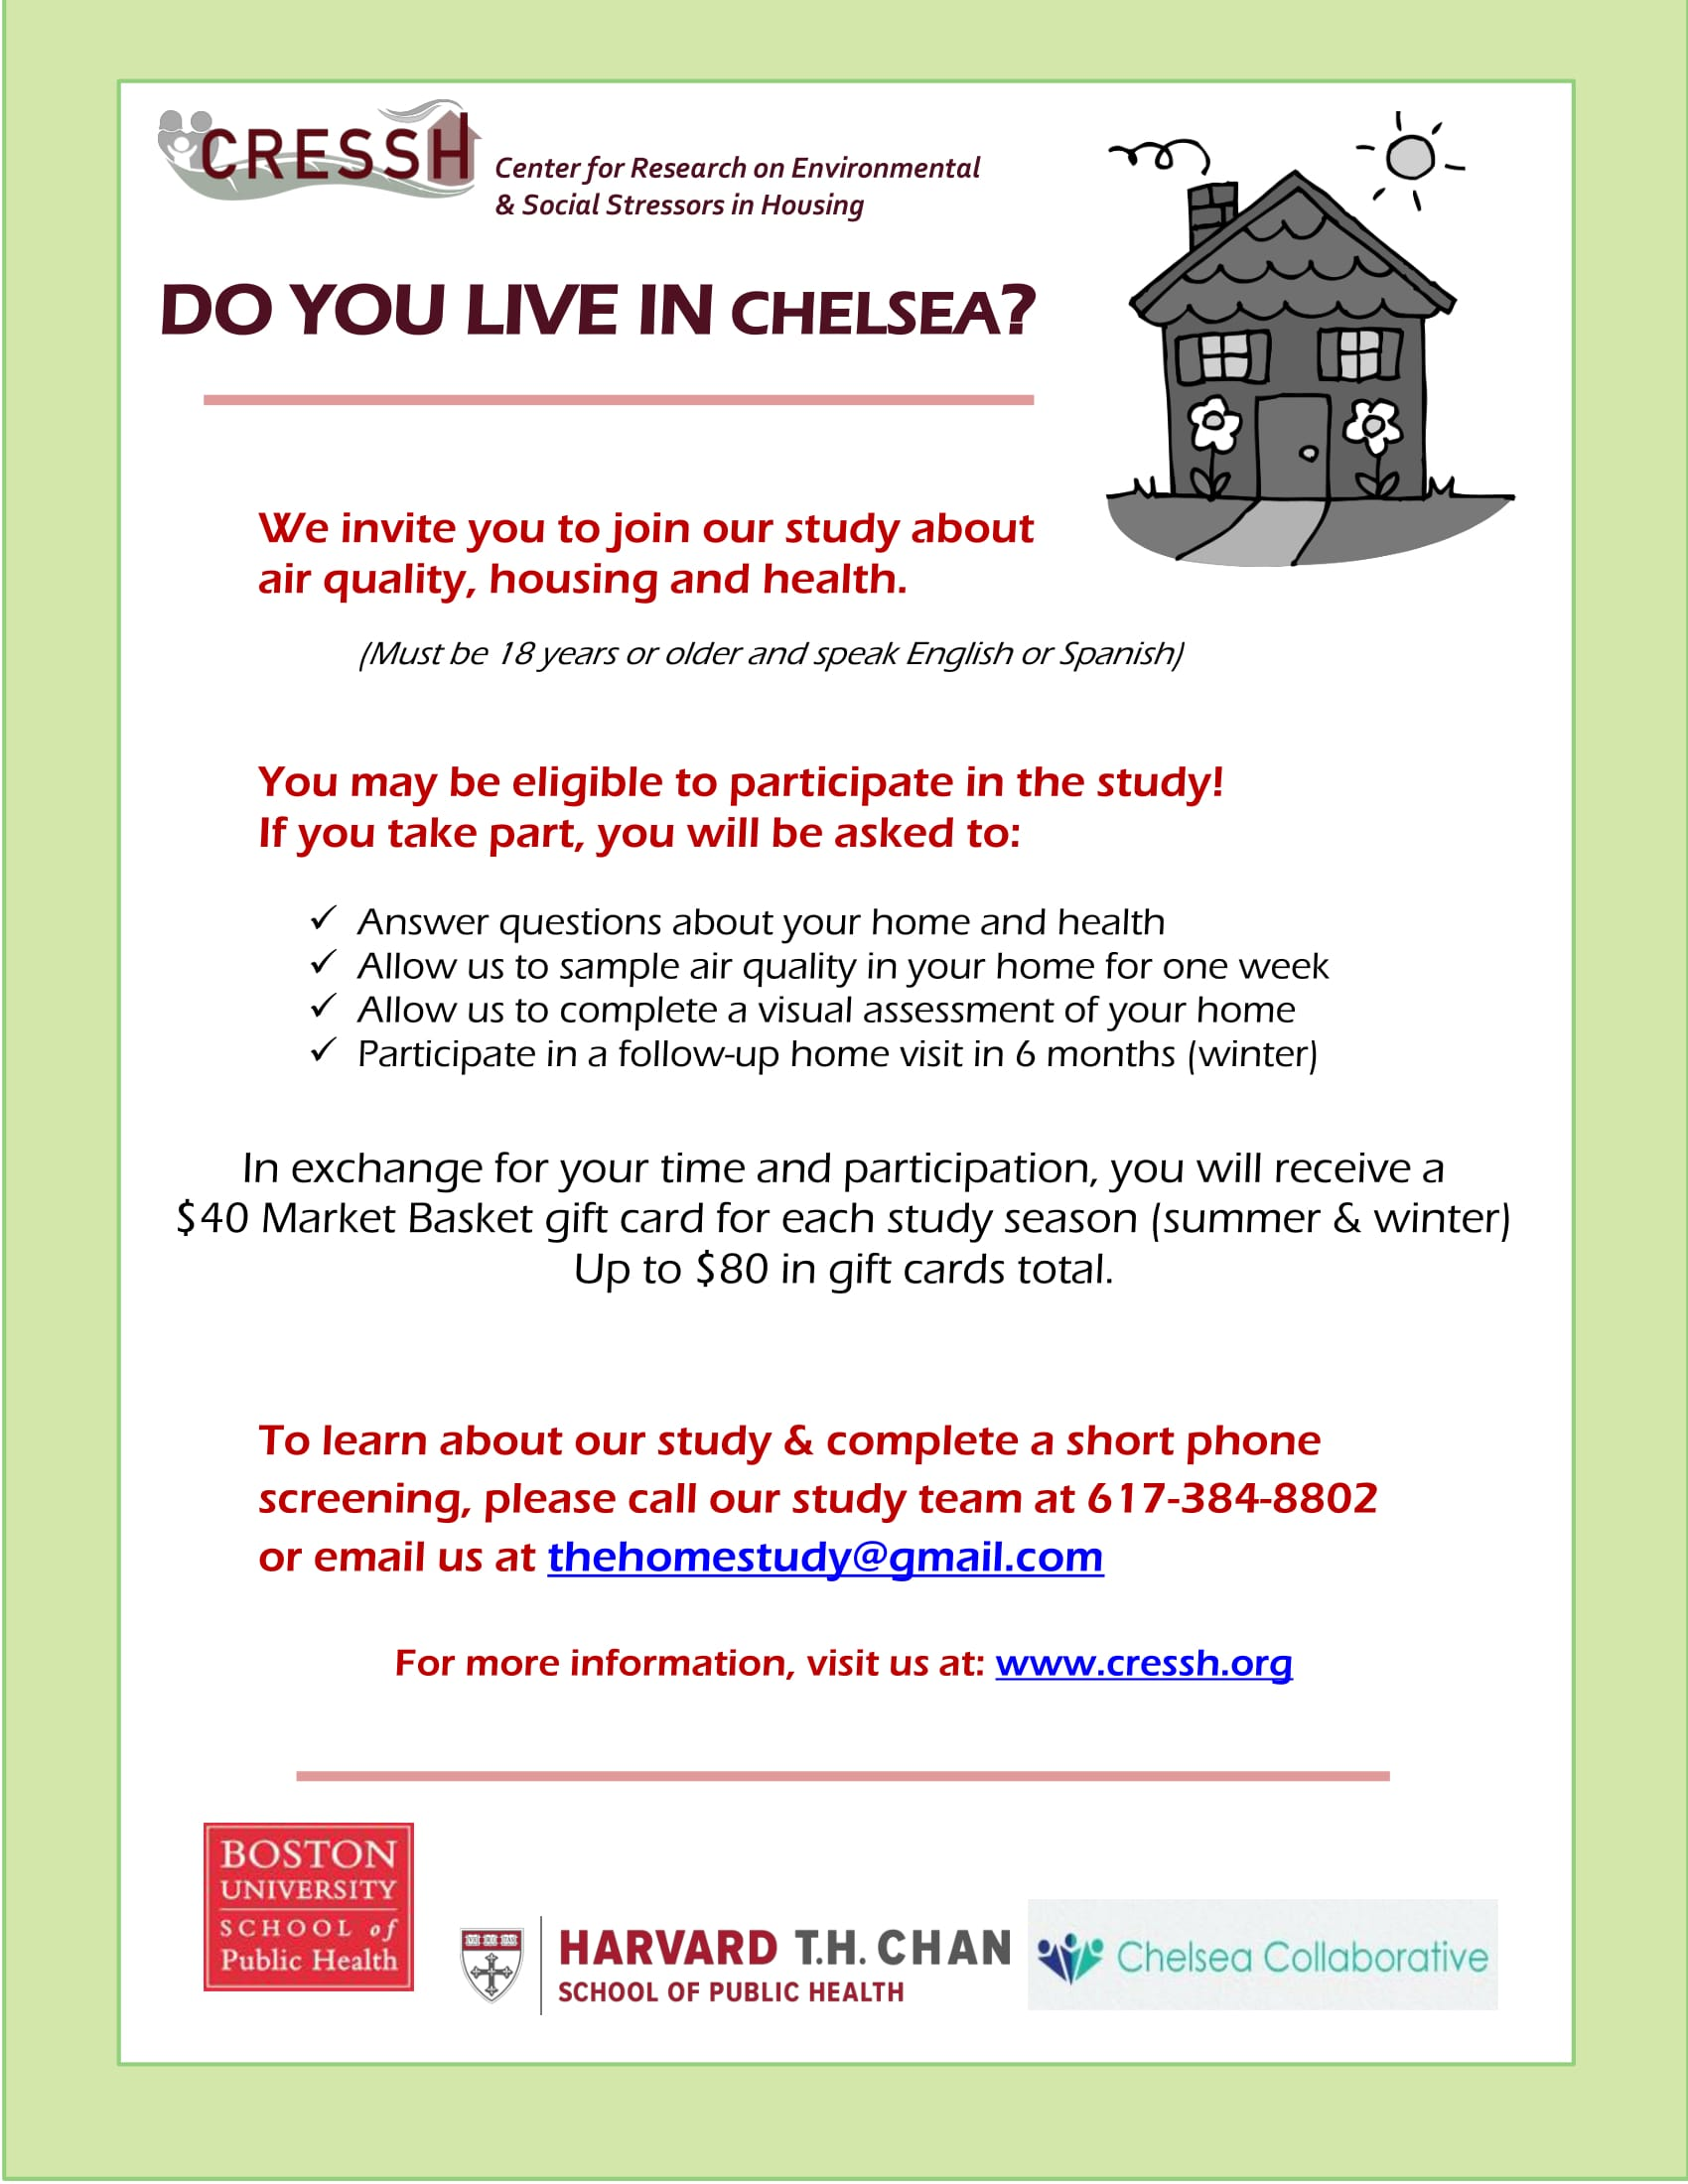 ExposureDisparities_RecruitmentFlyer_Chelsea_English-1